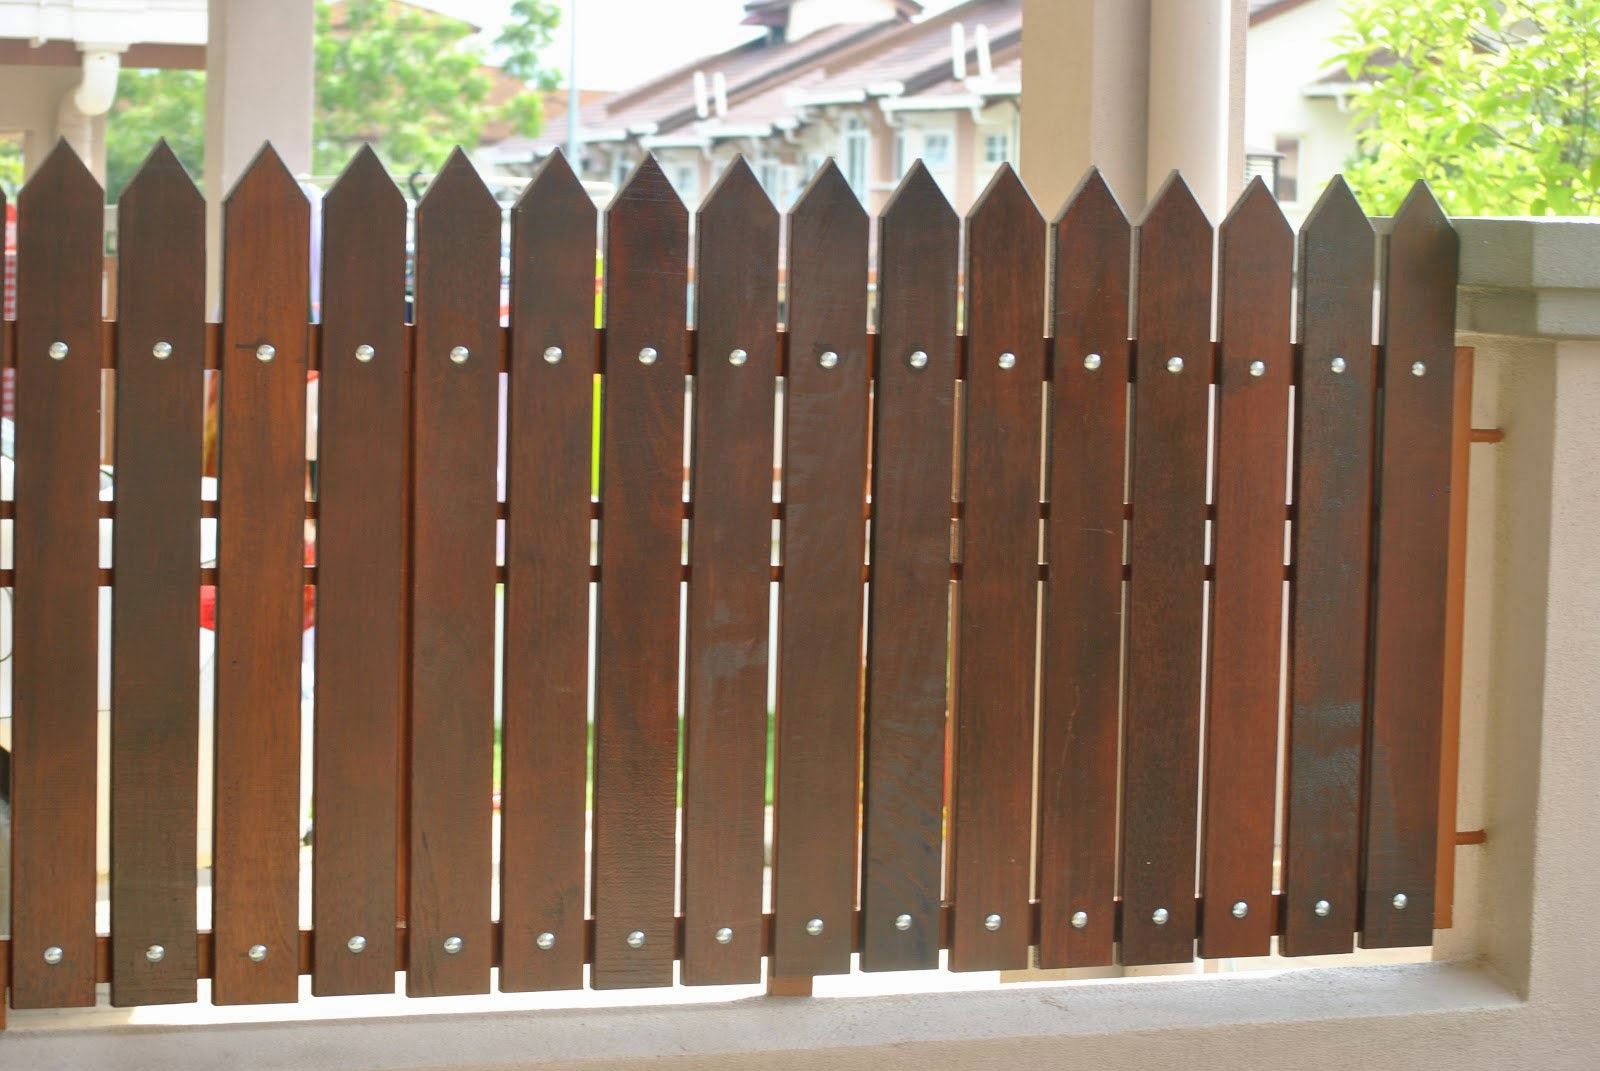 Fence-Minimalist-Home-From-Wood-Model-Minimalist